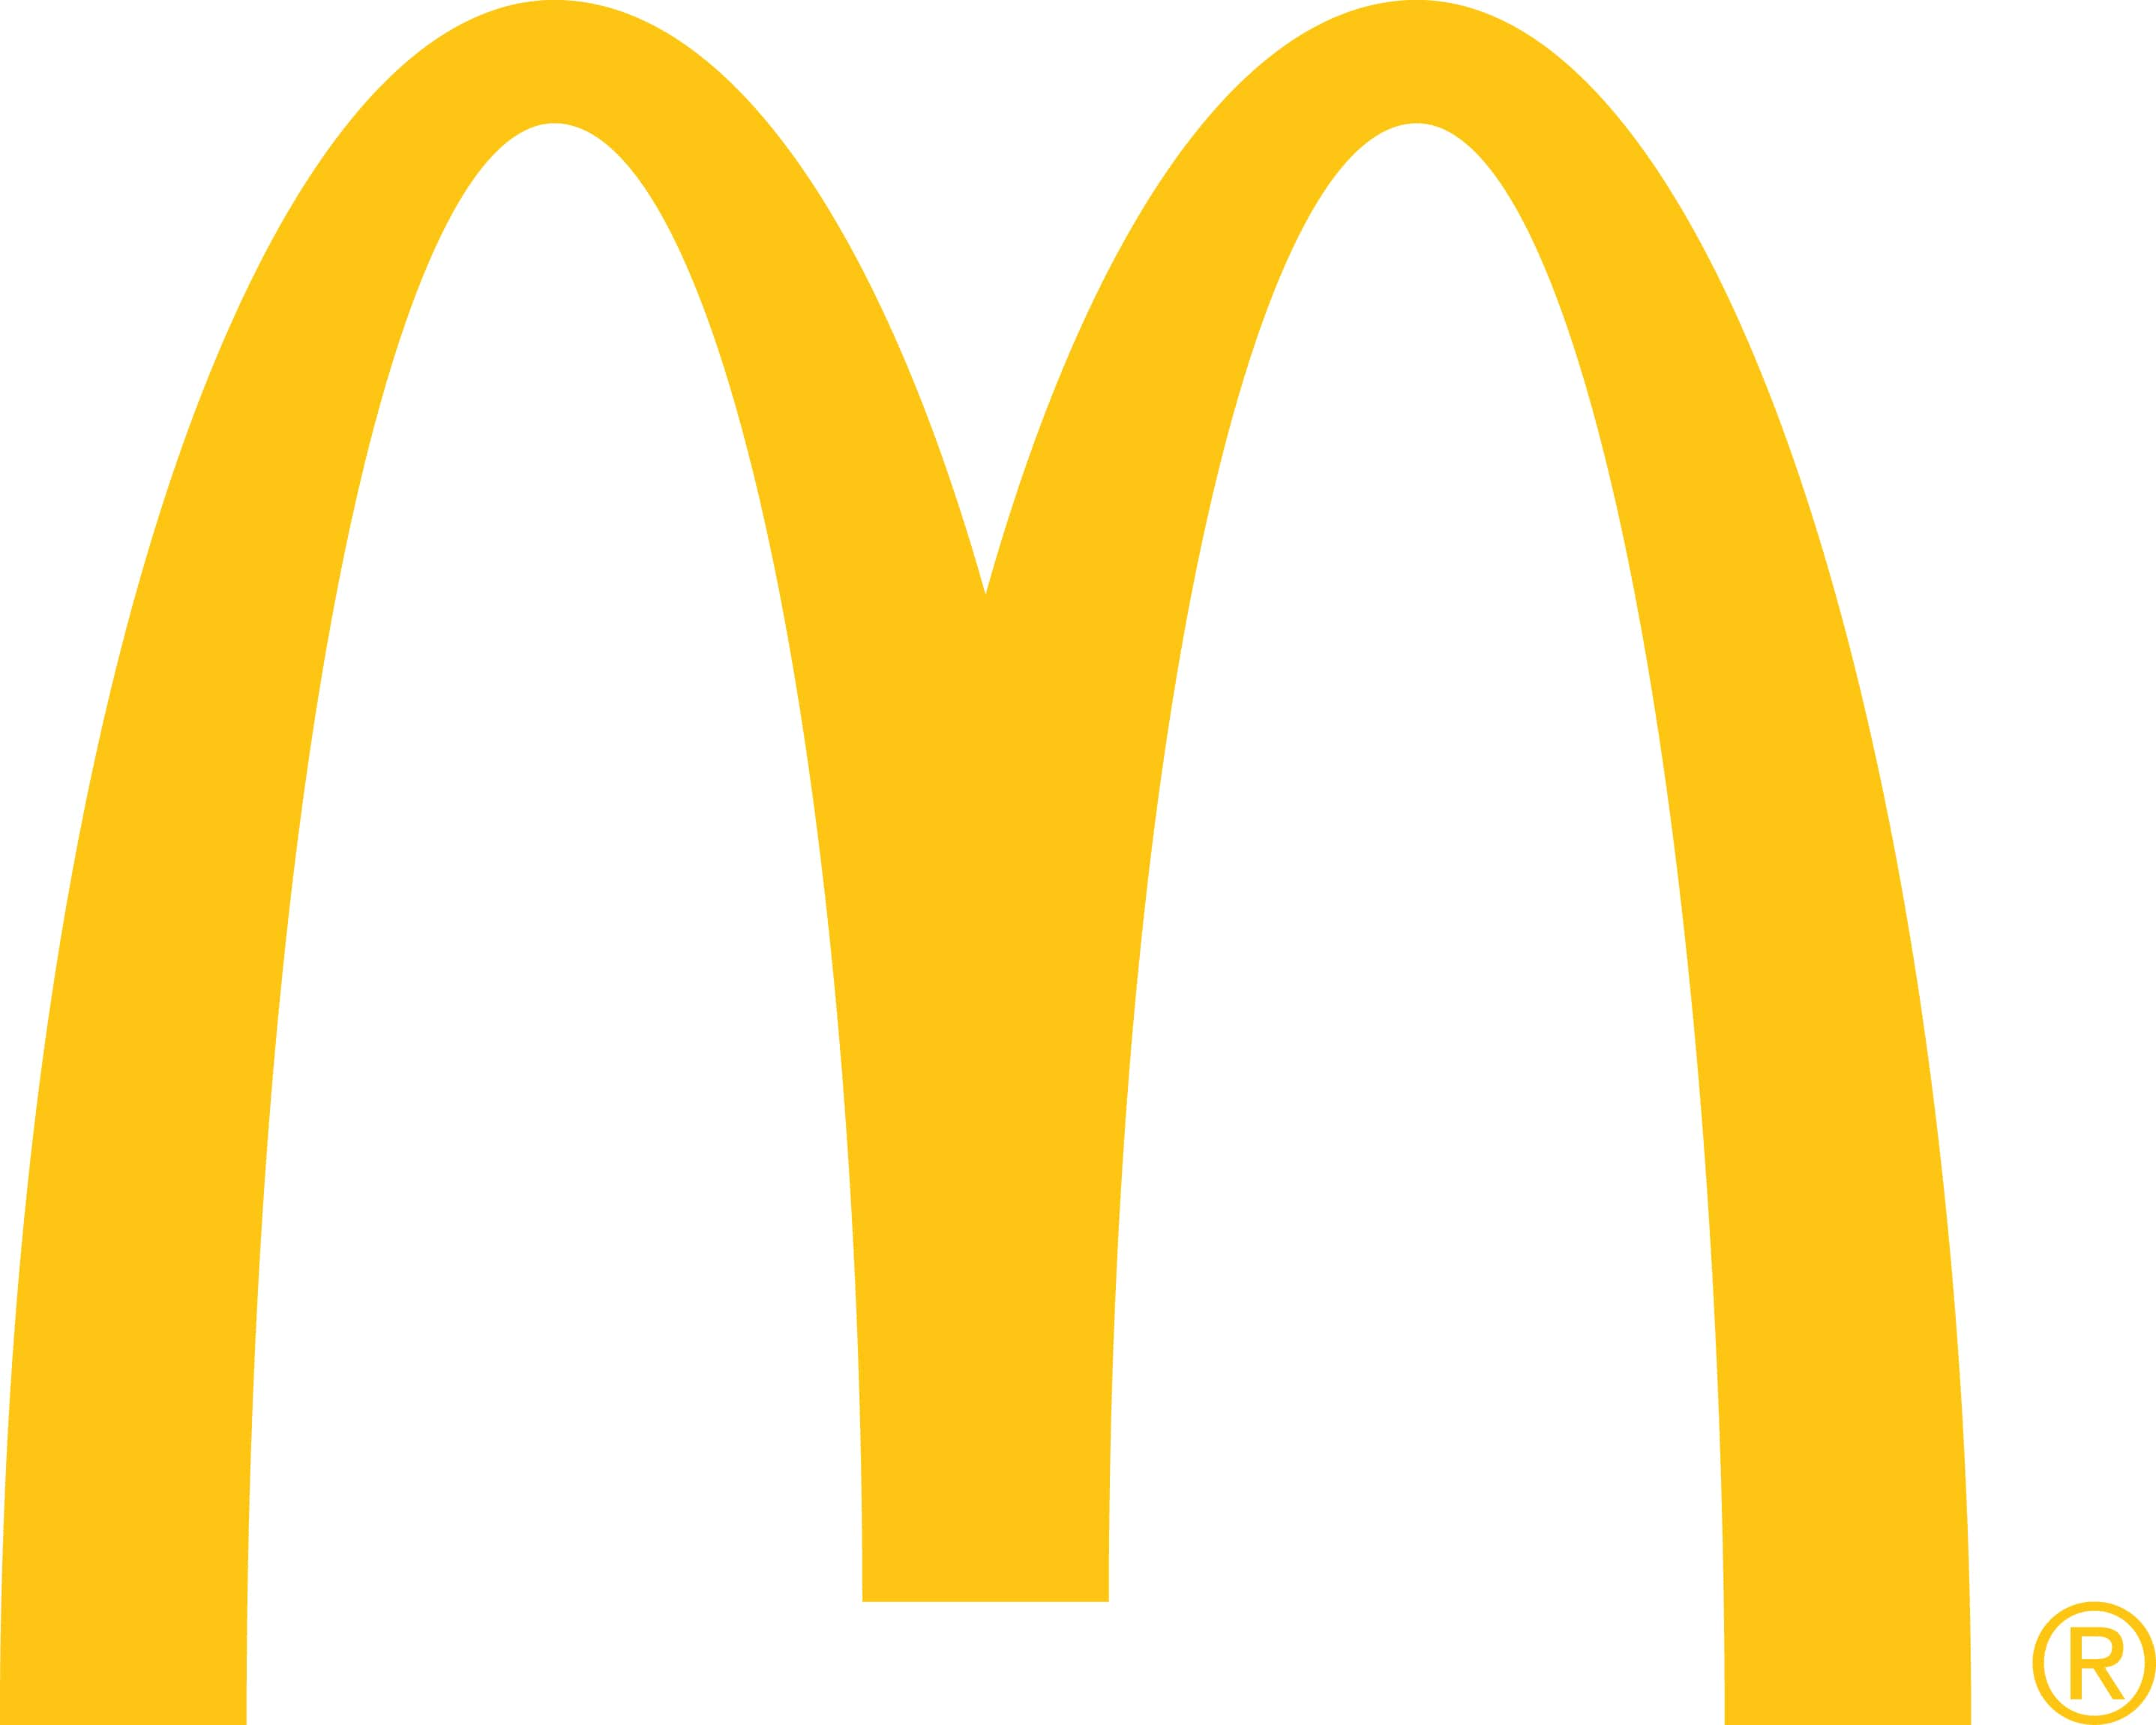 1 Golden Arches_Yellow R (3).jpg